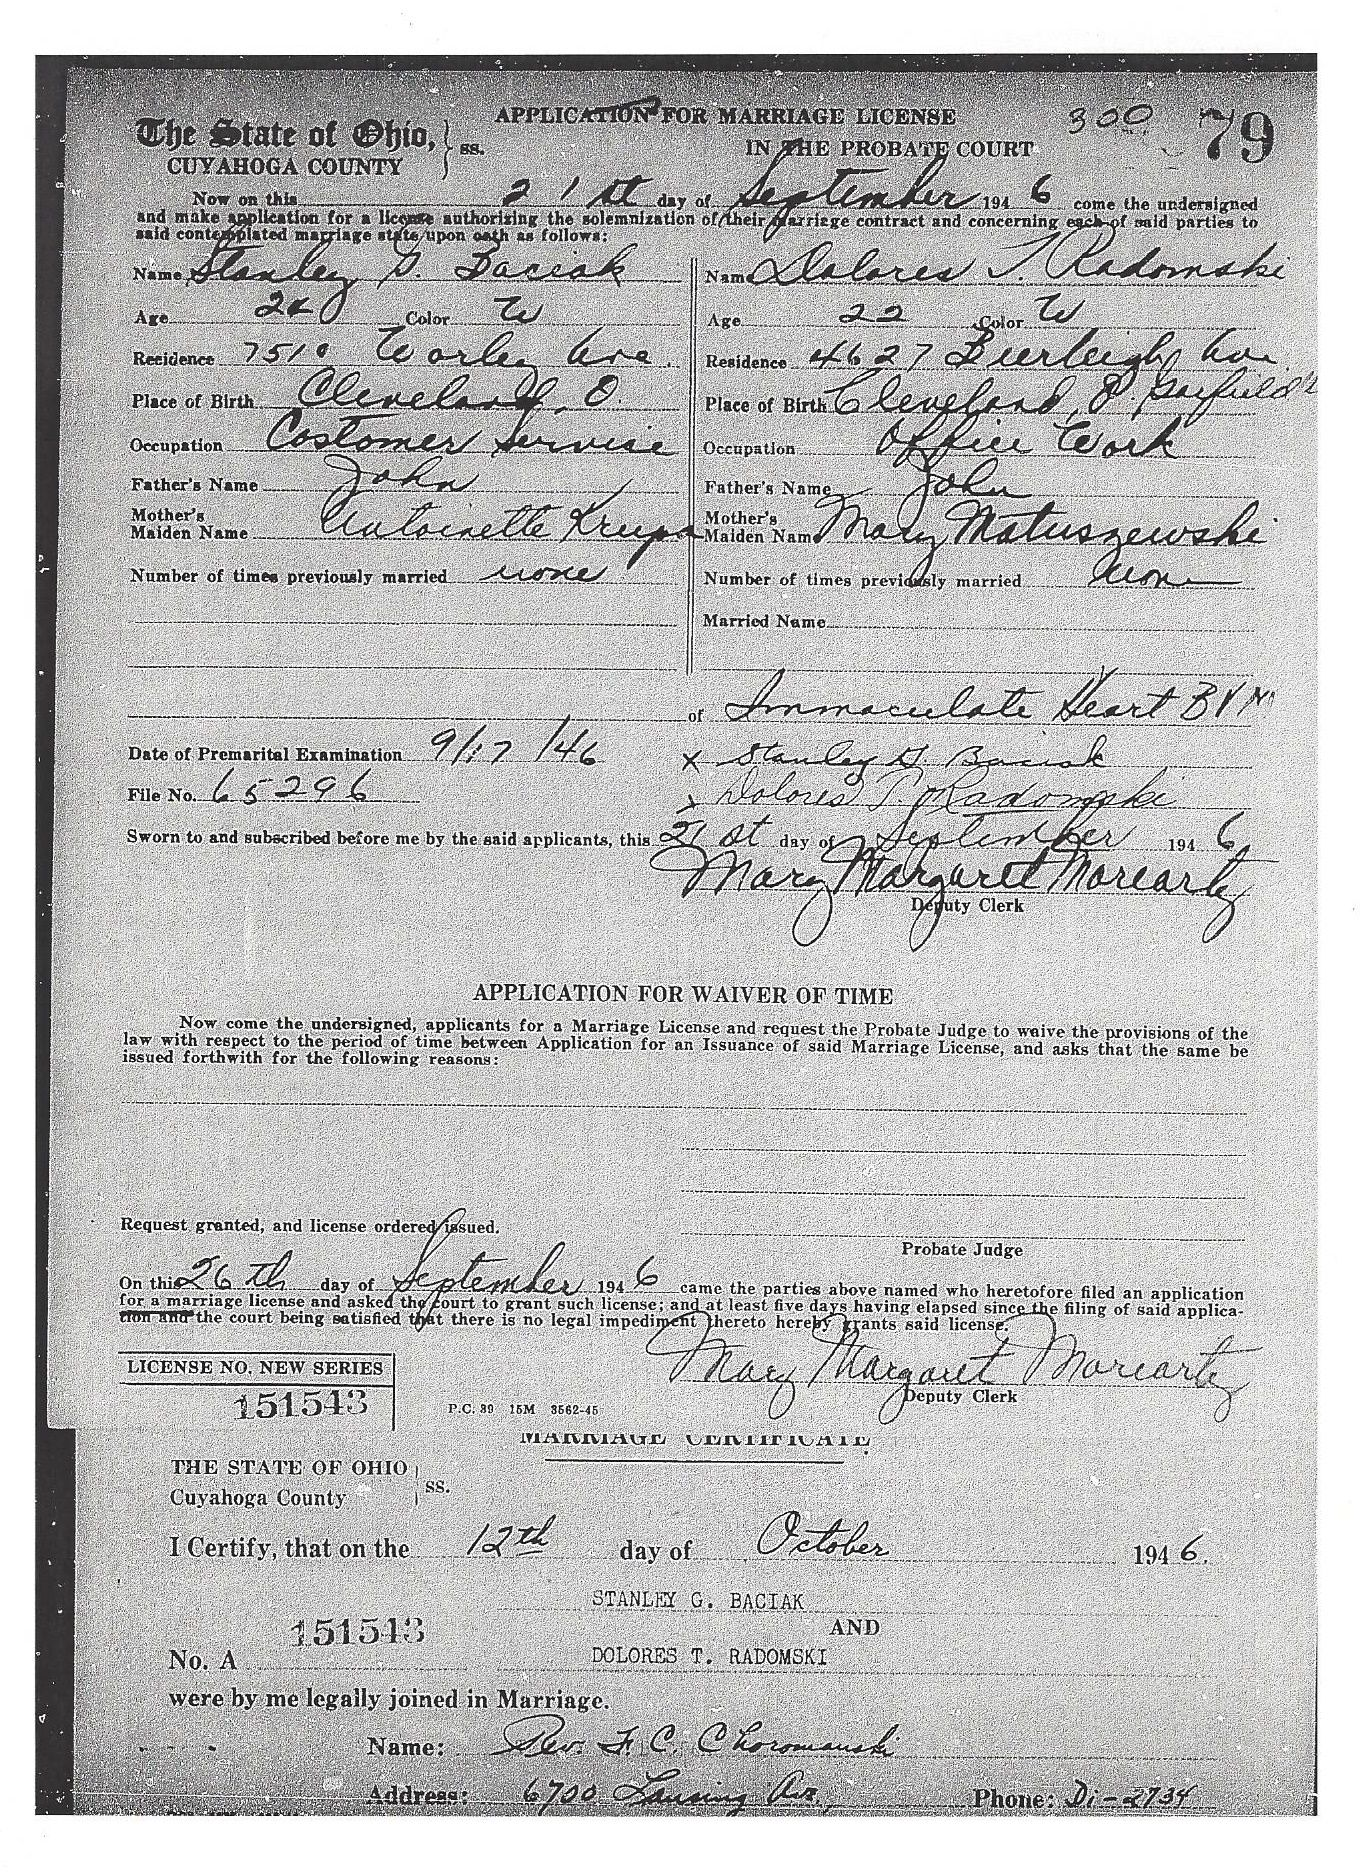 Stanley George Baciak And Dolores T Radomski Marriage Certificate